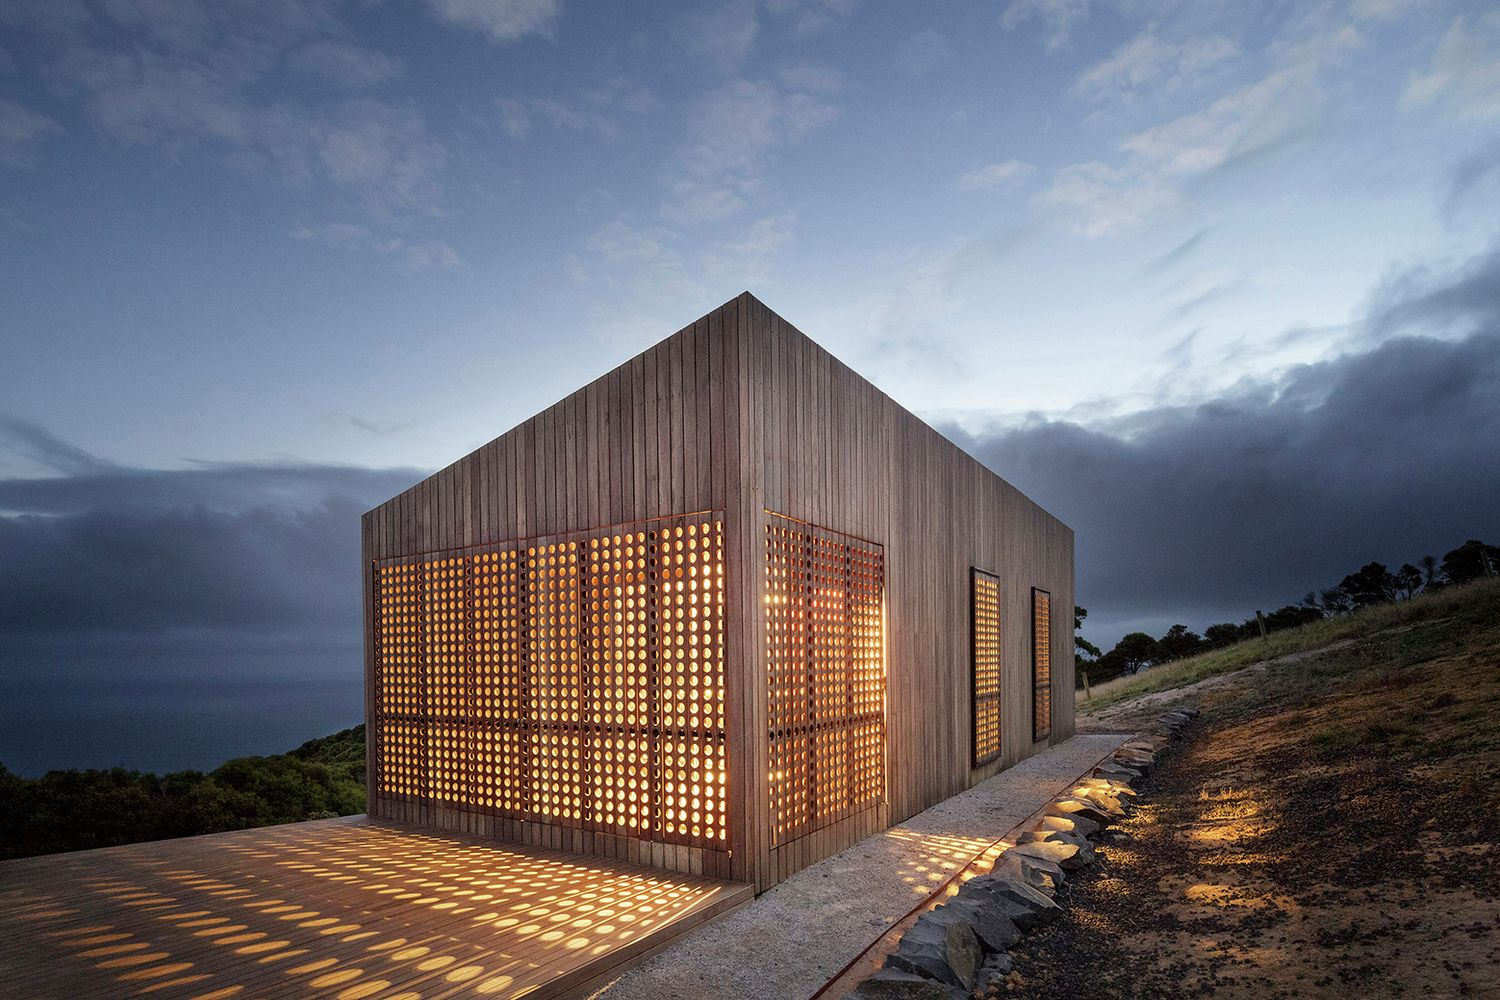 Gallery Of Micro Architecture 40 Big Ideas For Small Cabins 26 In 2020 Architecture House Designs Exterior Exterior Design